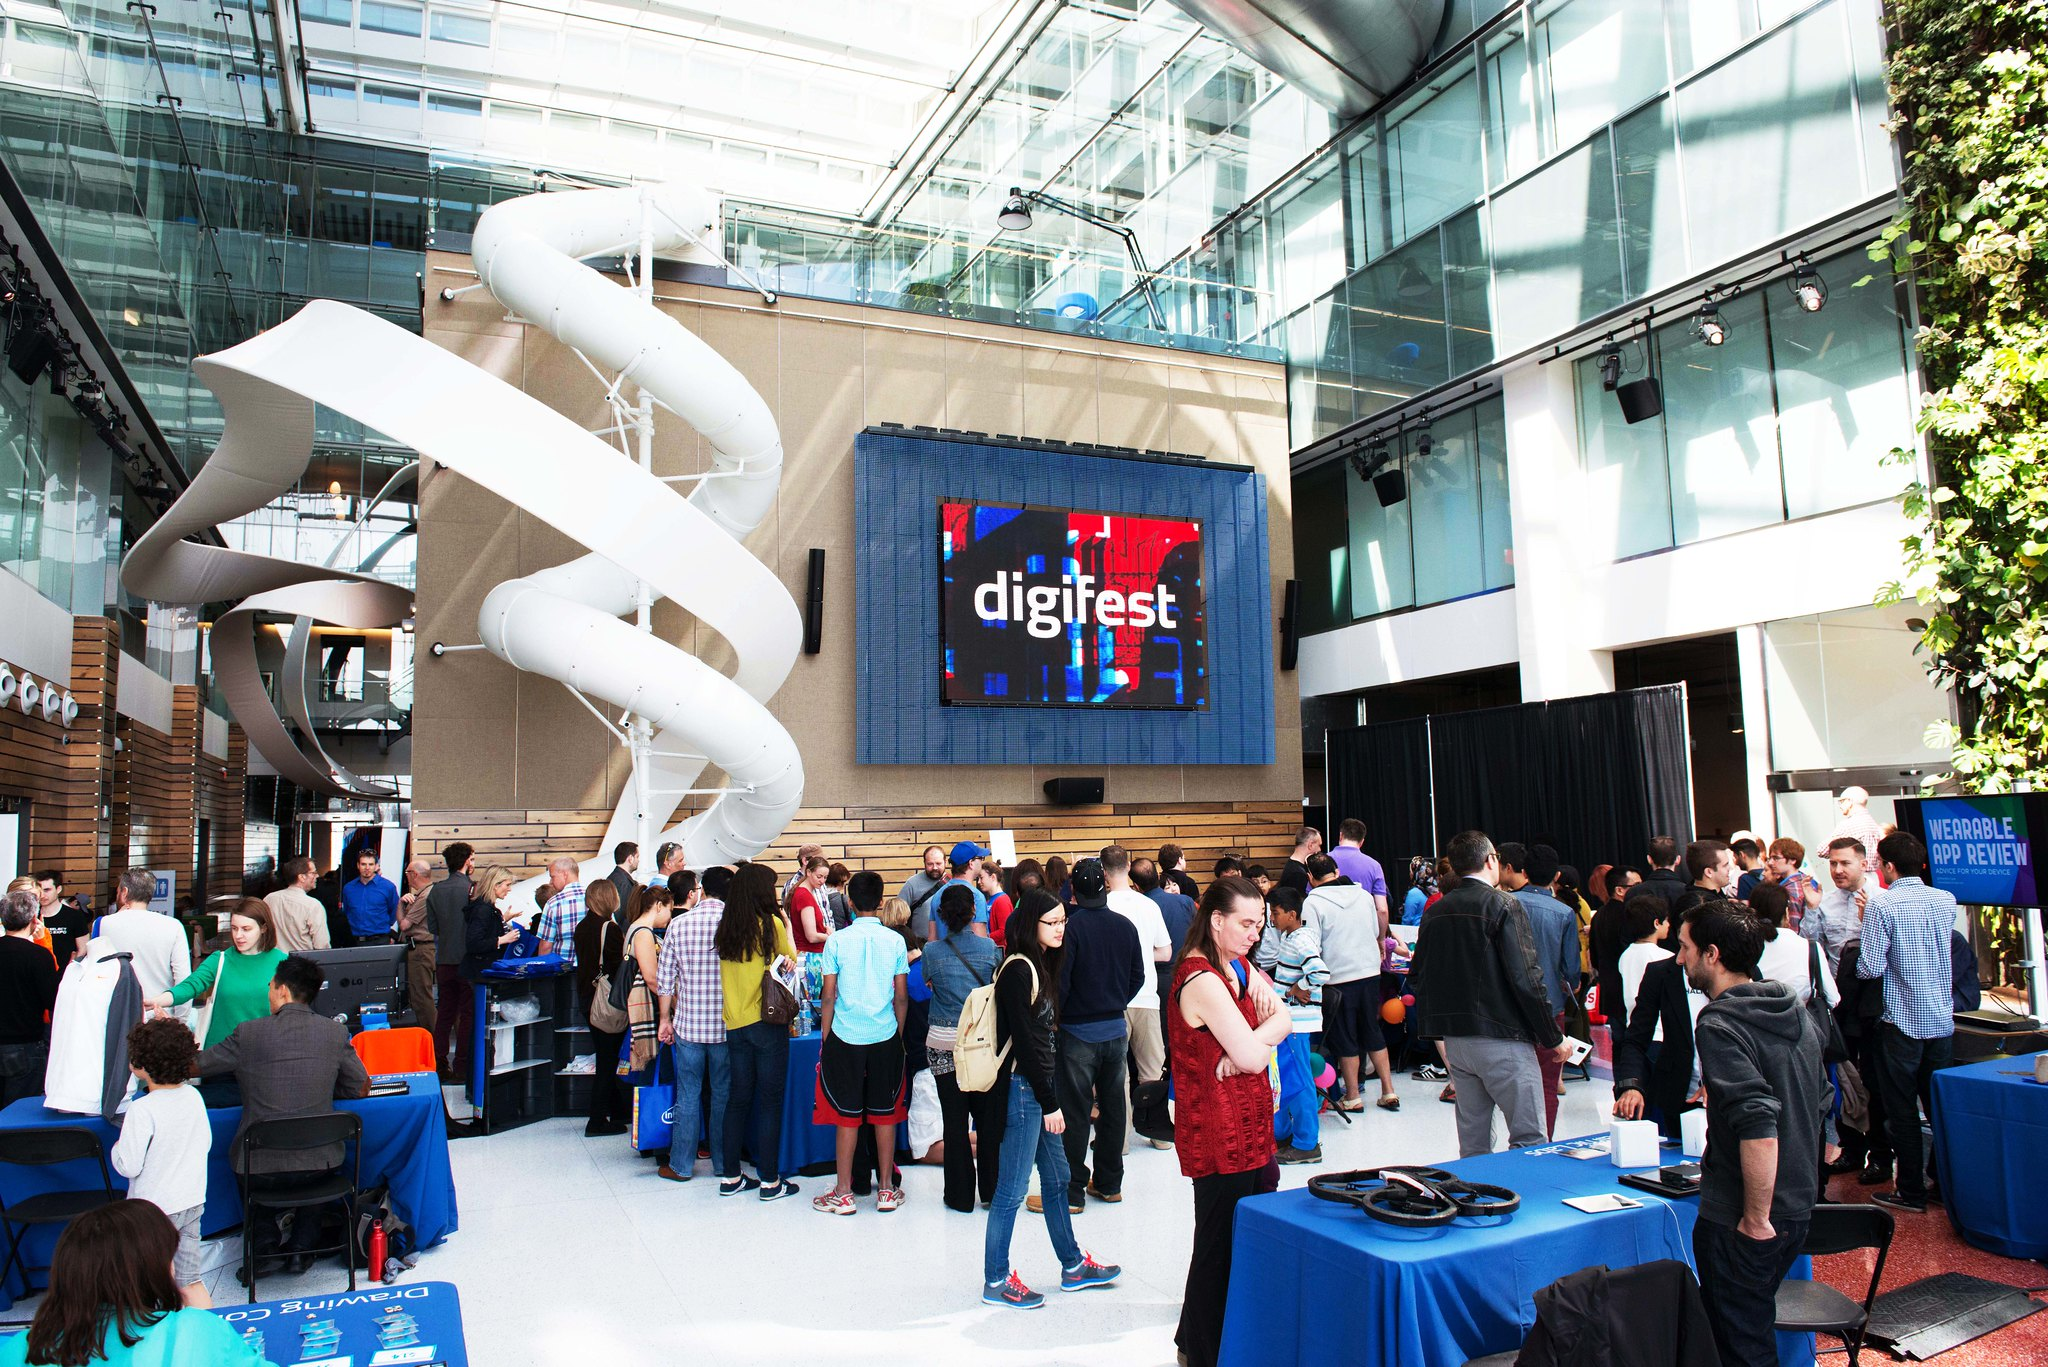 Digifest 2014, a large crowd of people standing around different table booths.